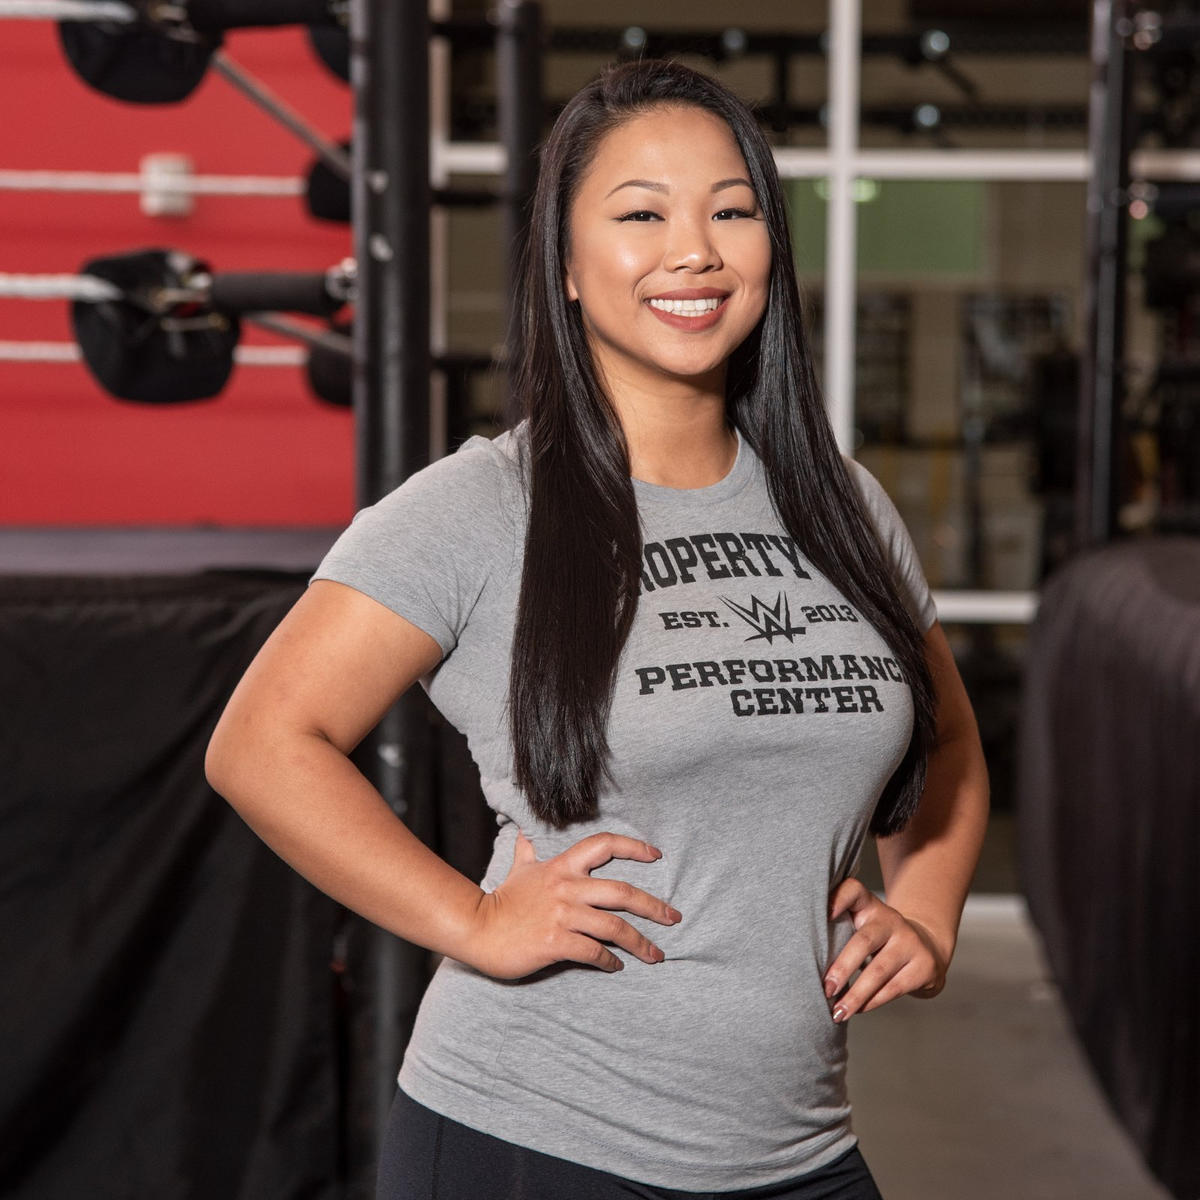 Under the name Karen Q, Karen Yu has become a breakout star on the independent circuit in recent years. She also wrestled in the 2018 Mae Young Classic.